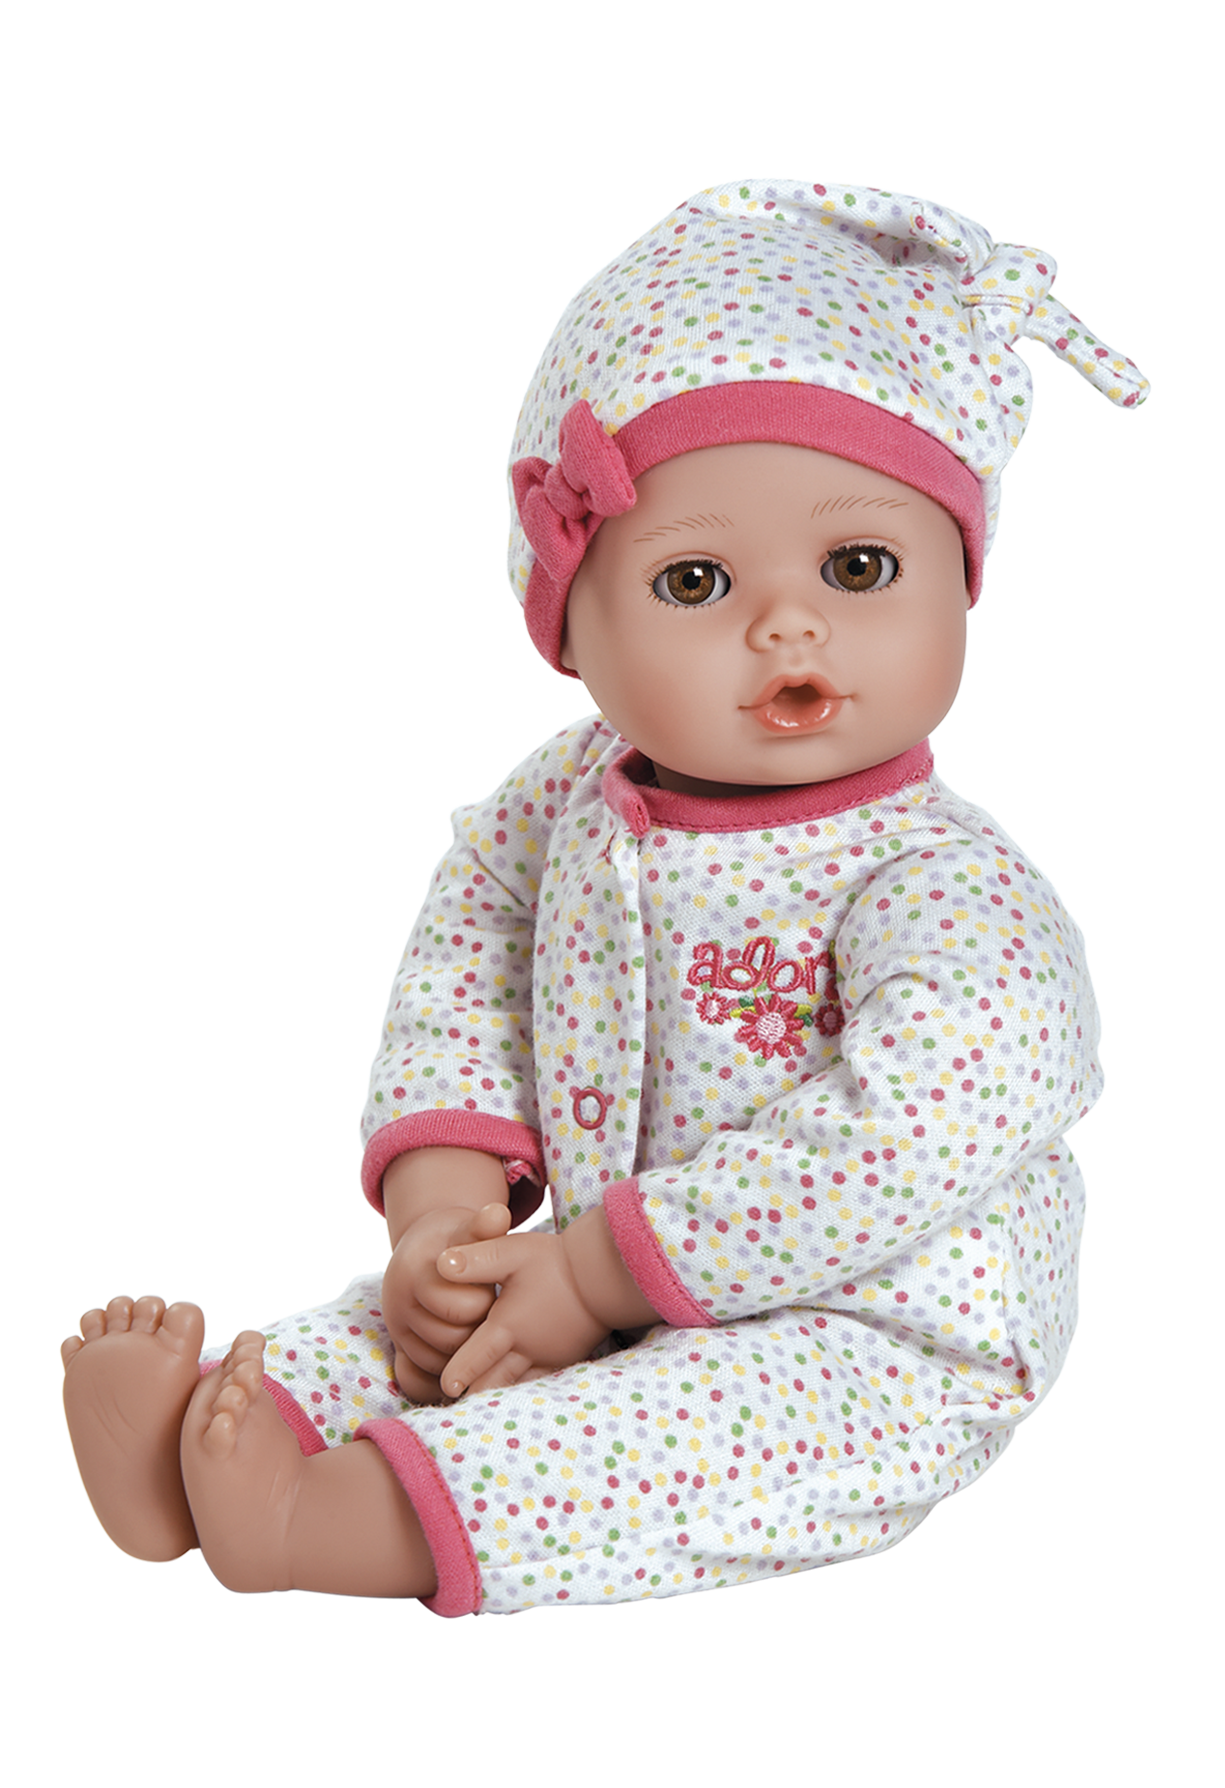 Baby doll png. Playtime dot m pinterest